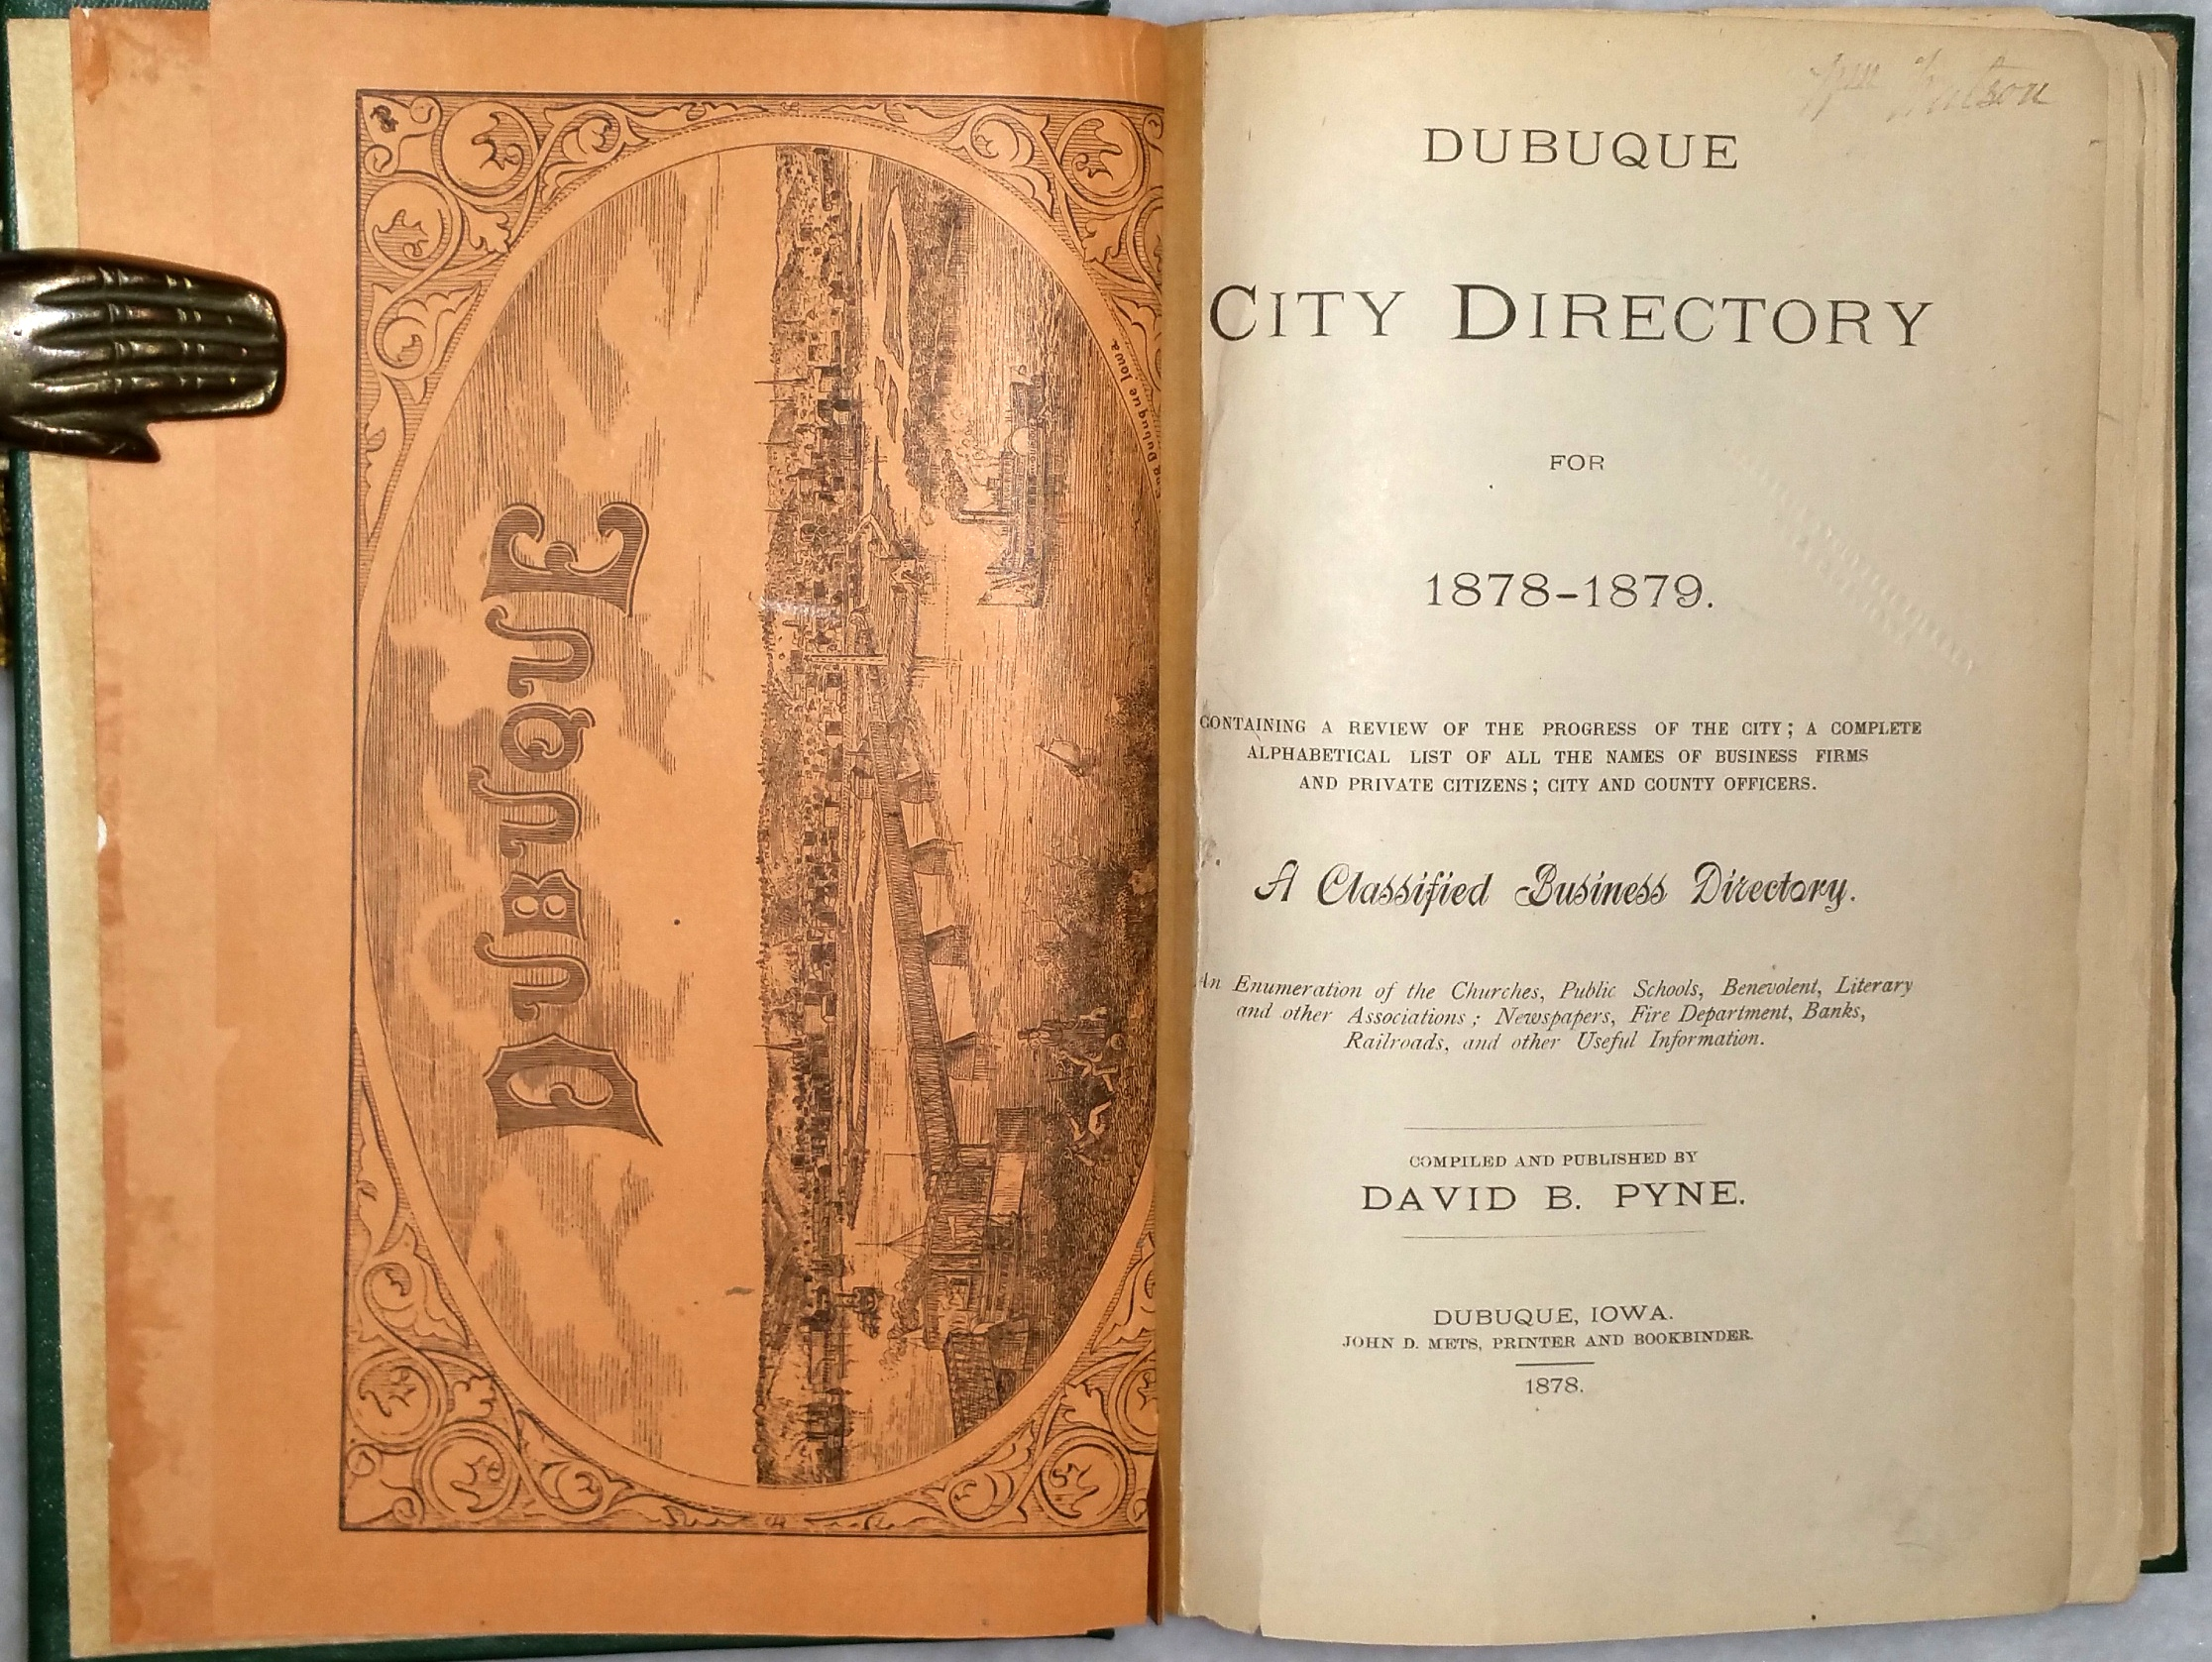 Image for Dubuque City Directory for 1878-1879.  Containing a Review  of the Progress of the City; A Complete Alphabetical List of All the Names of Business Firms and Private Citizens; City and County Officers.  A Classified Business Directory...